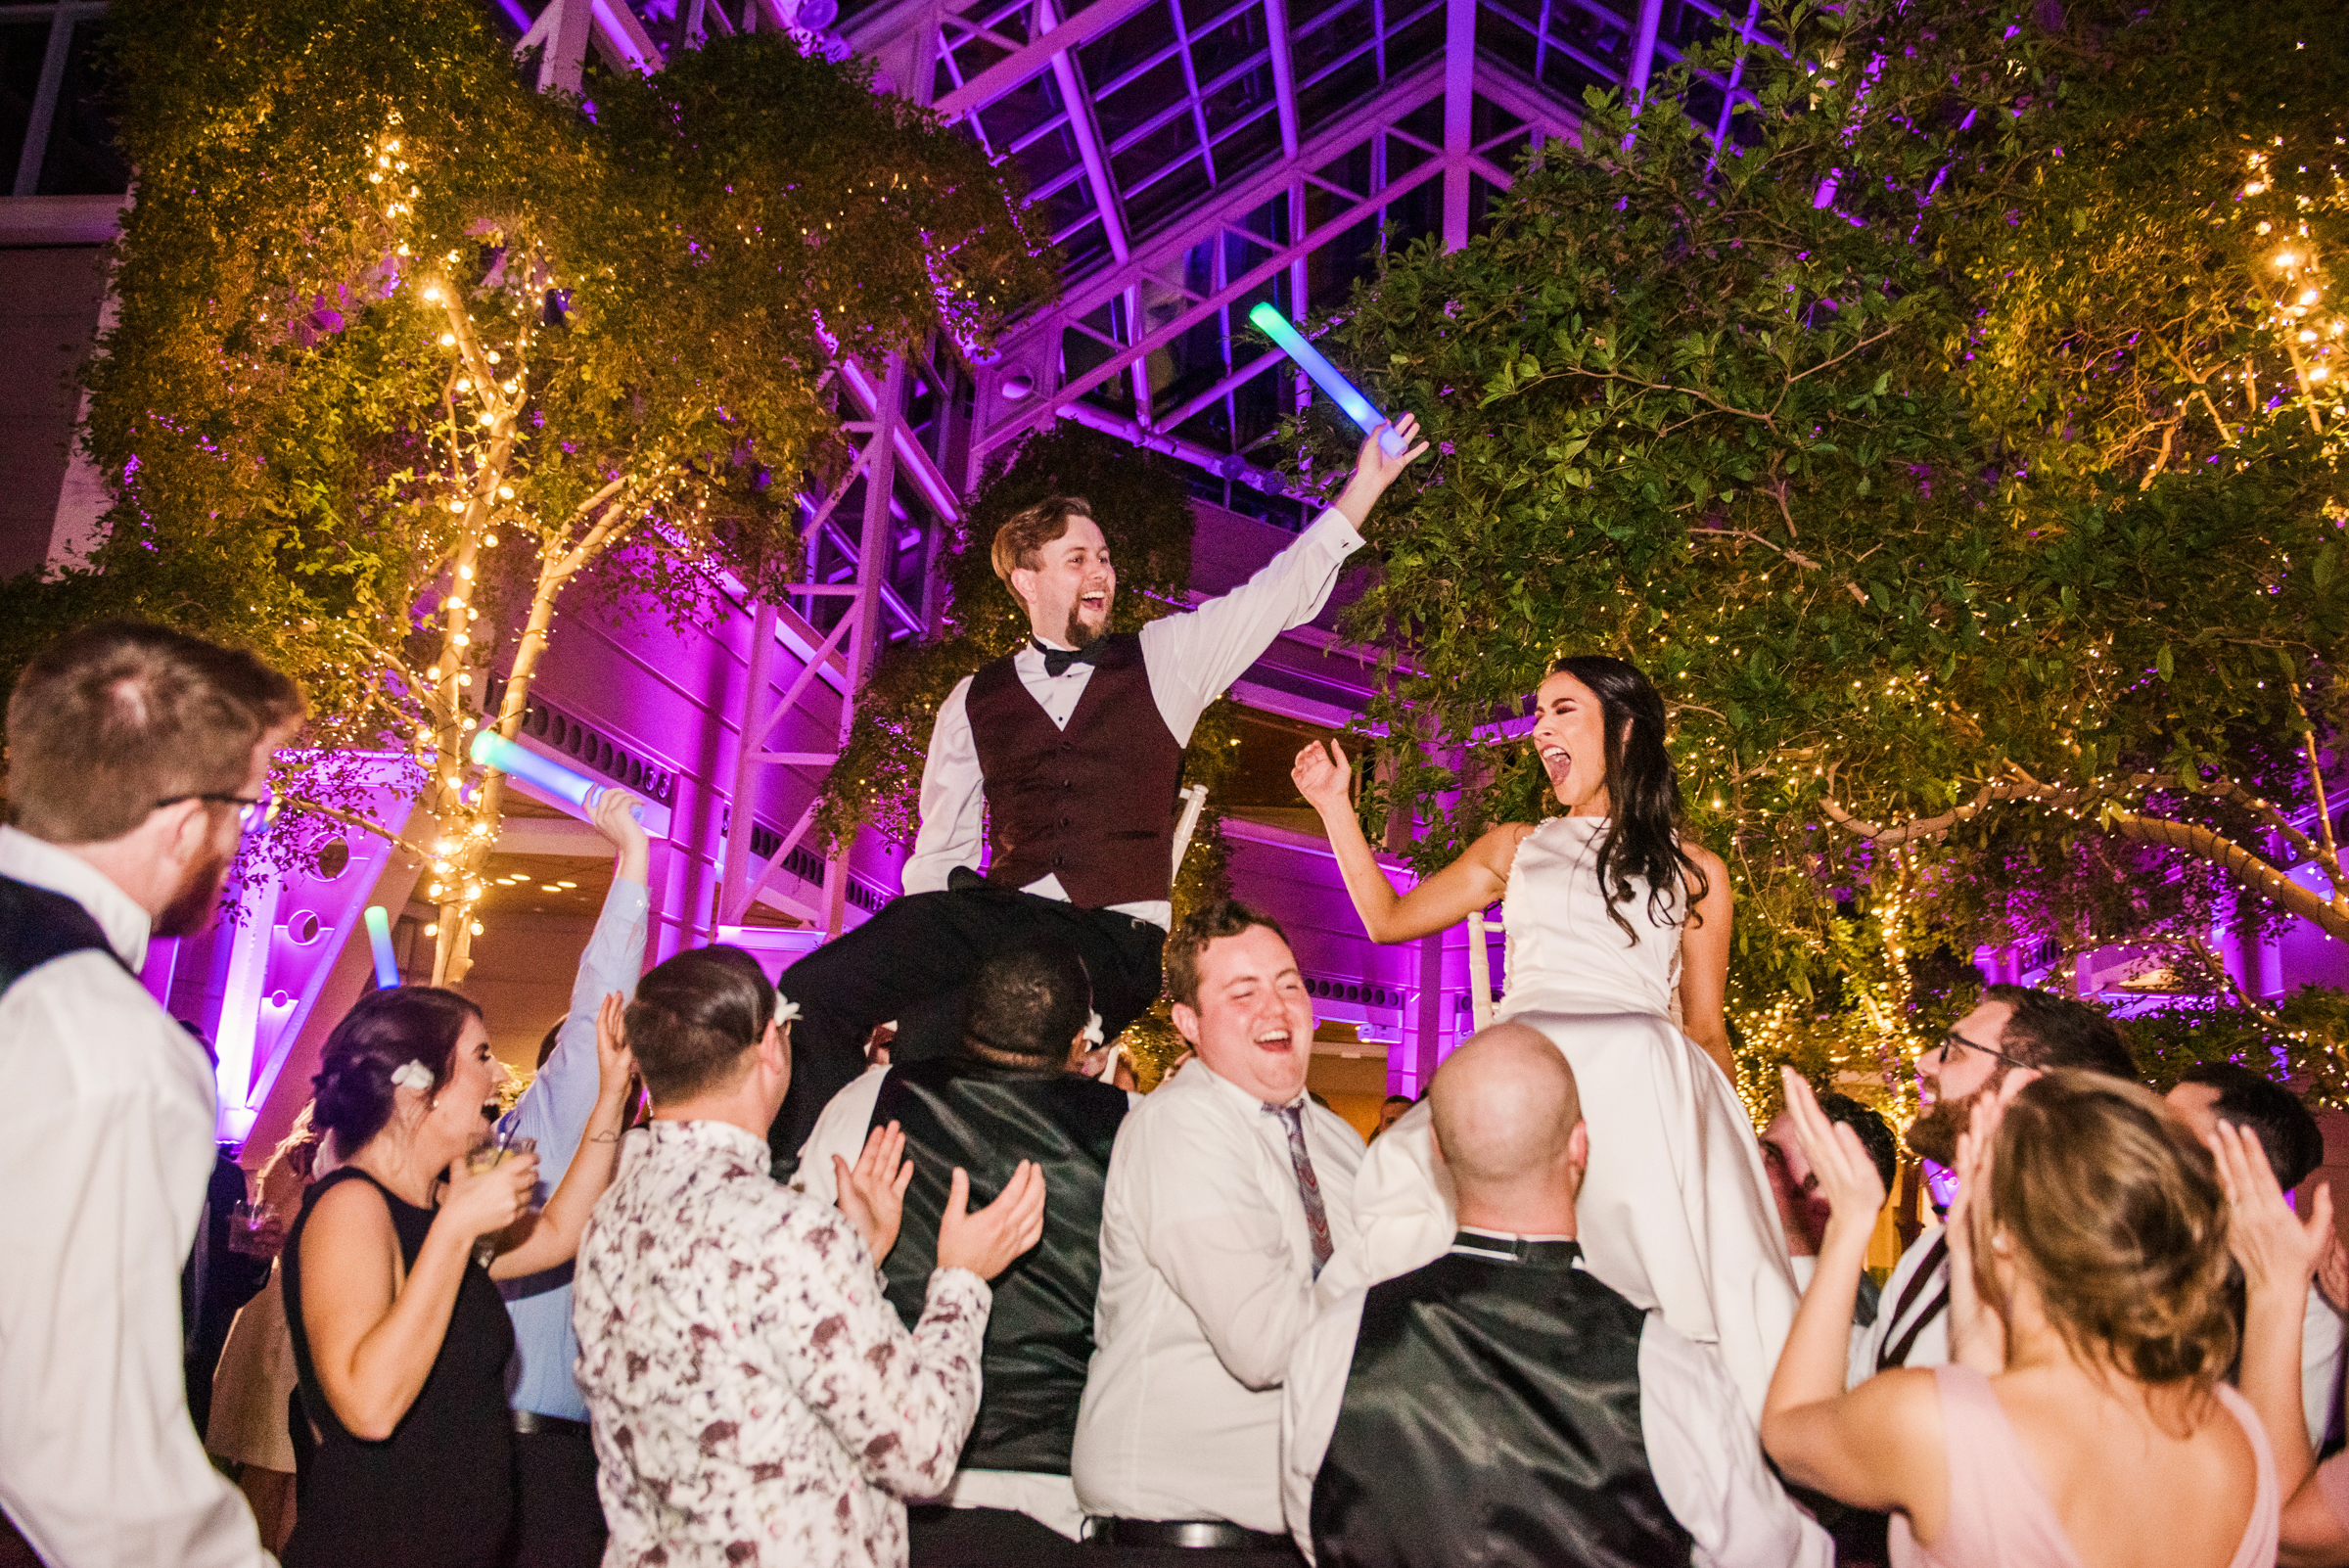 Wintergarden_by_Monroes_Rochester_Wedding_JILL_STUDIO_Rochester_NY_Photographer_221117.jpg